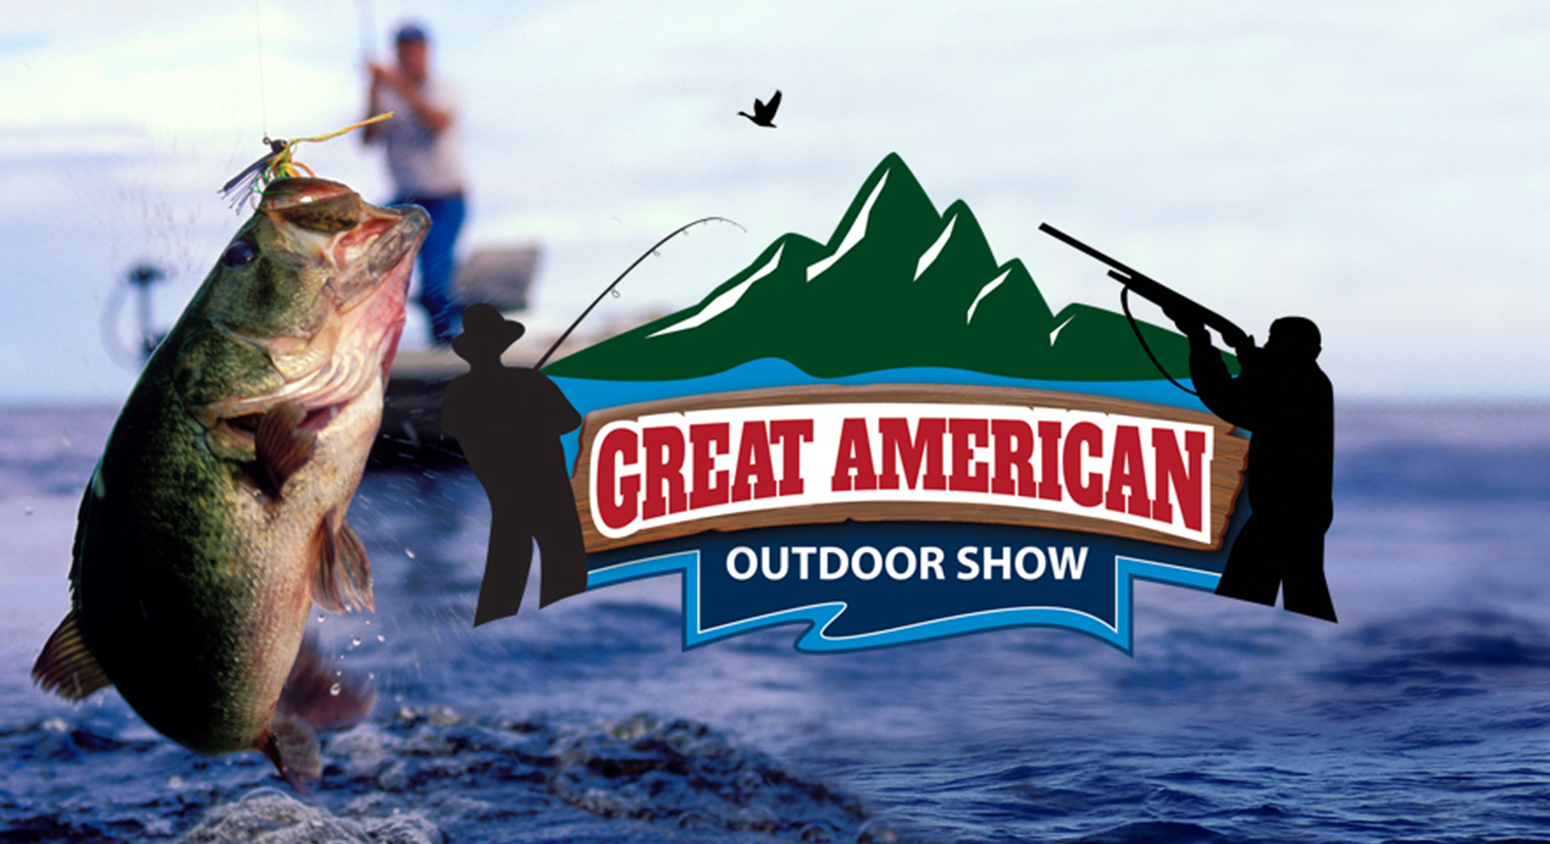 Great American Outdoor Show Events: Friday, February 12th